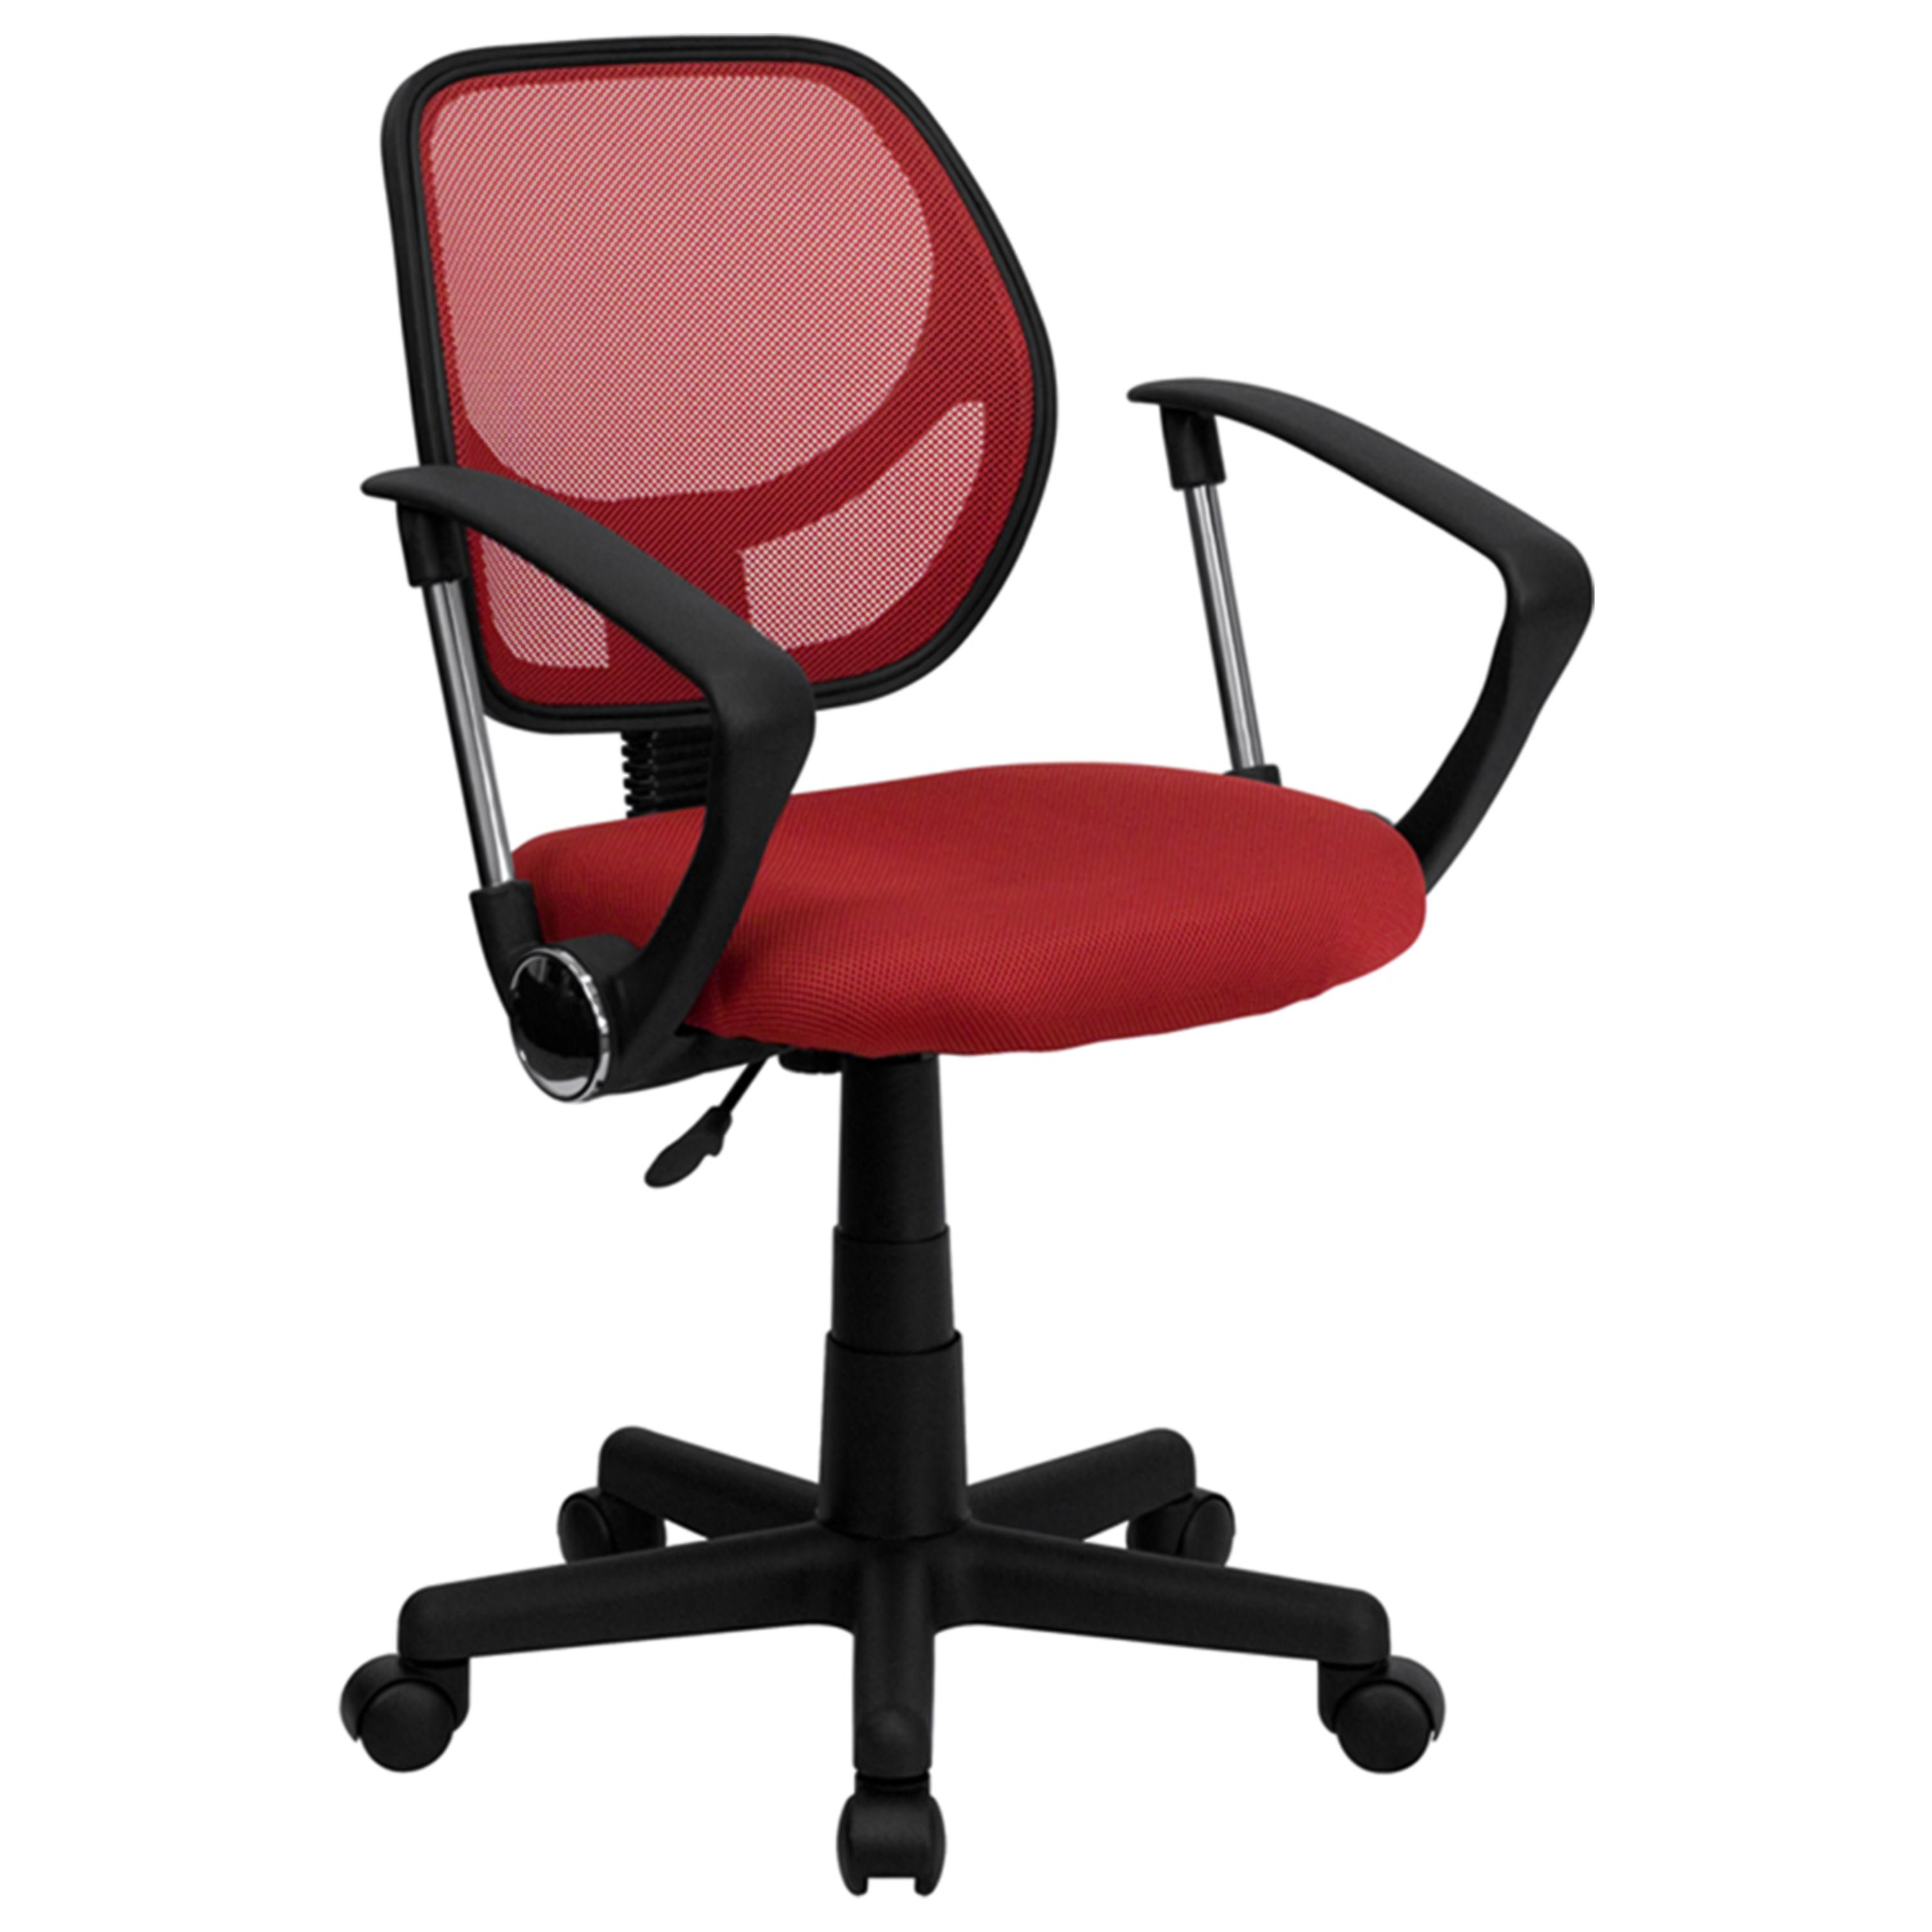 the aurora low back mesh office chair in red comes at a very